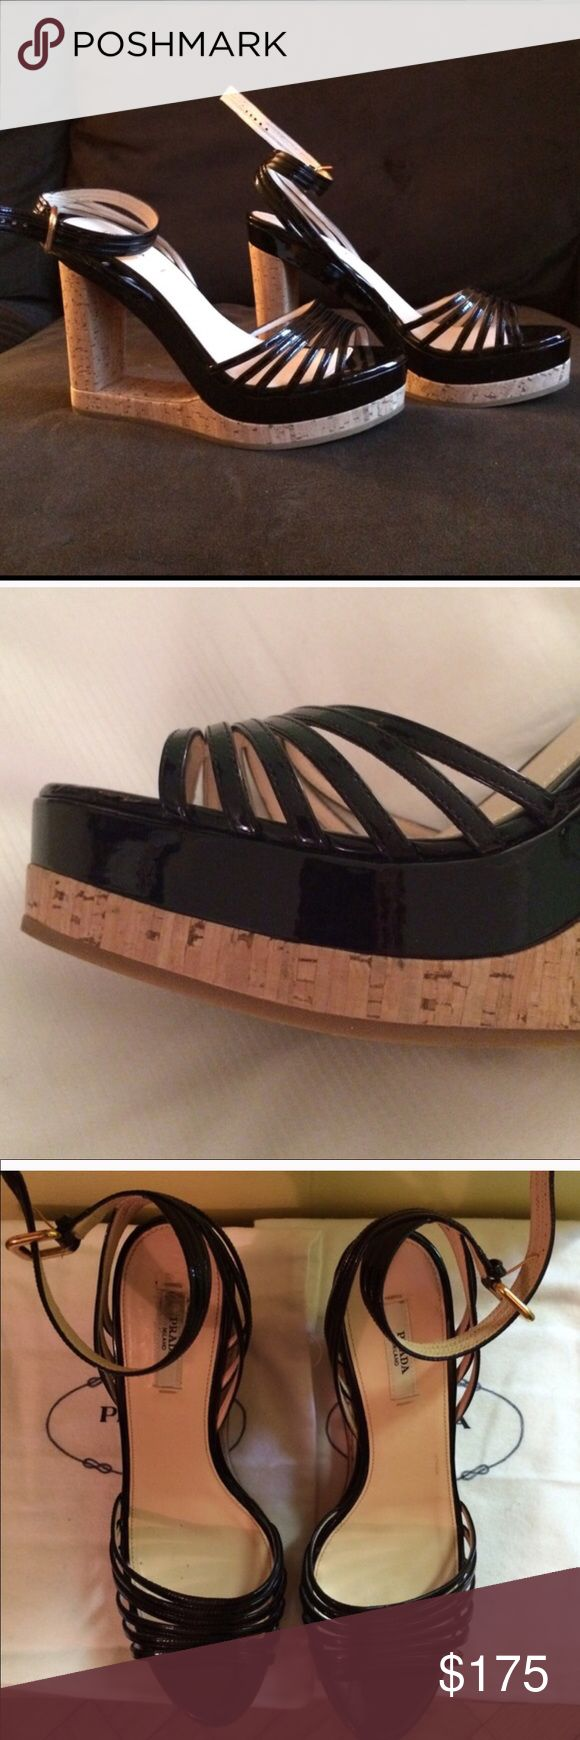 """Prada Black Patent Cork Wedge Sandals Black cork wedges are 5"""" inches high with a 2"""" inch high platform. Very comfortable and easy to walk in. Worn only a few times. No damage to shoes, heels or cork. Comes with a dust bag. Prada Shoes Wedges"""